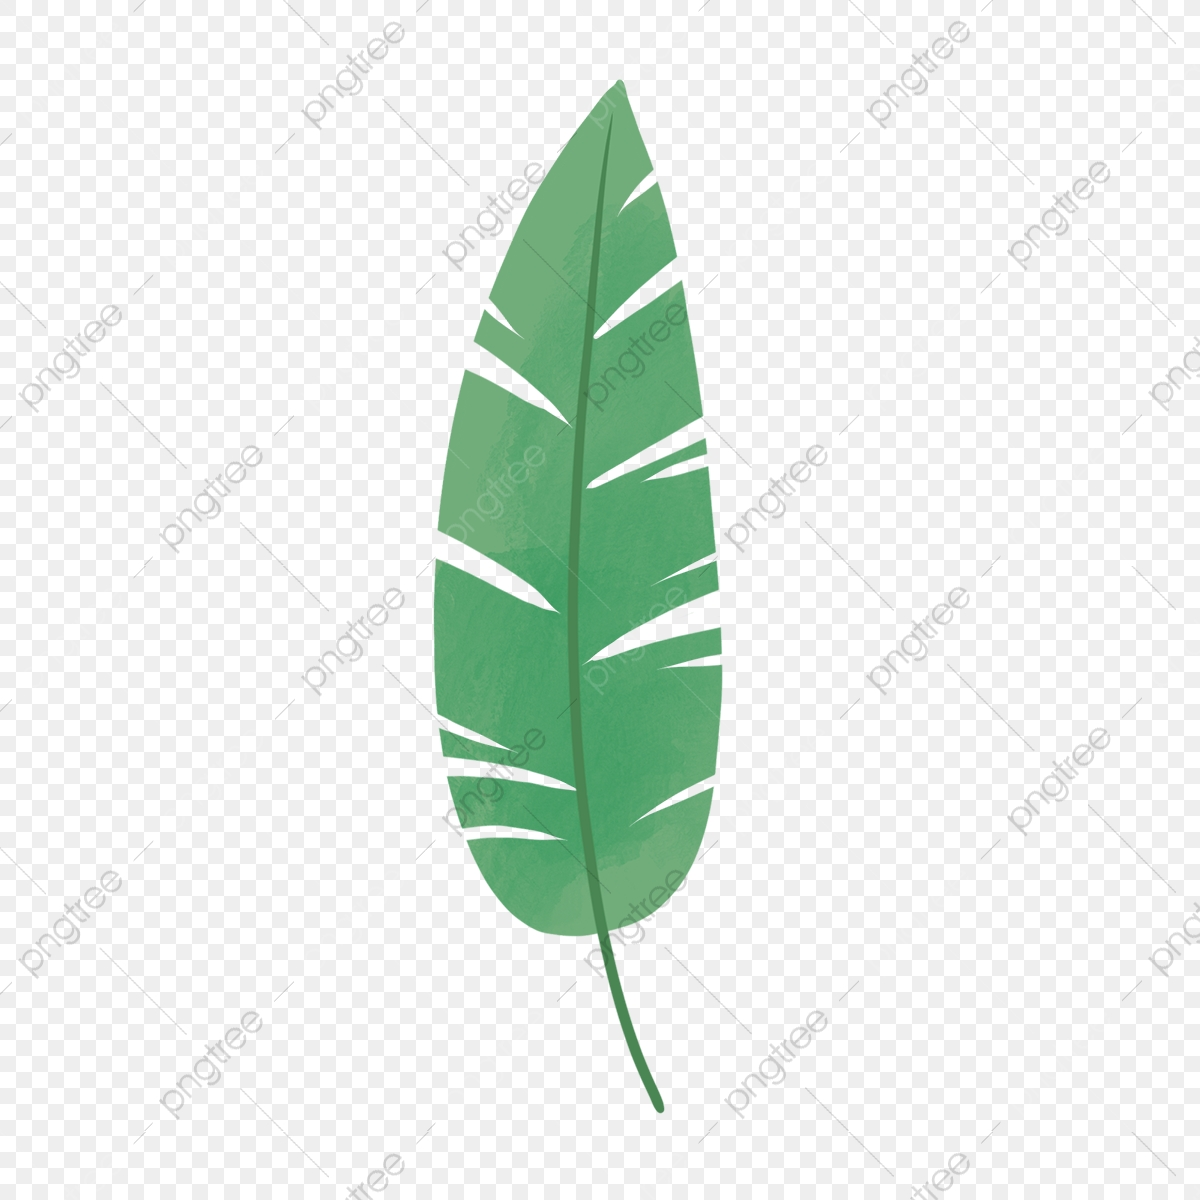 Hand Drawn Cute Tropical Leaf Tropical Drawing Nature Png Transparent Clipart Image And Psd File For Free Download